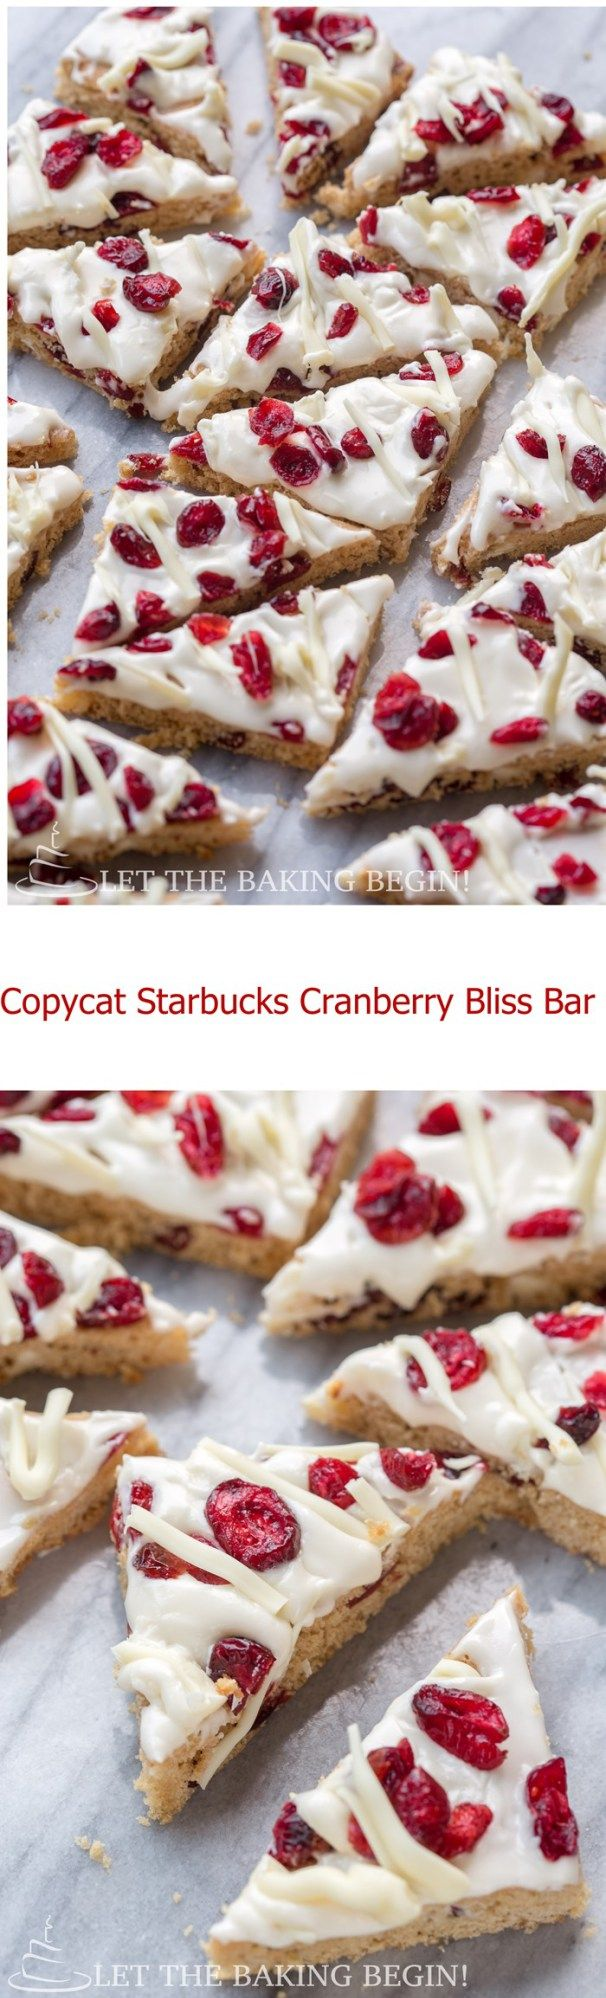 Copycat Starbucks Cranberry Bliss Bars - copy of the original Cranberry Bliss Bar. by Let the Baking Begin!